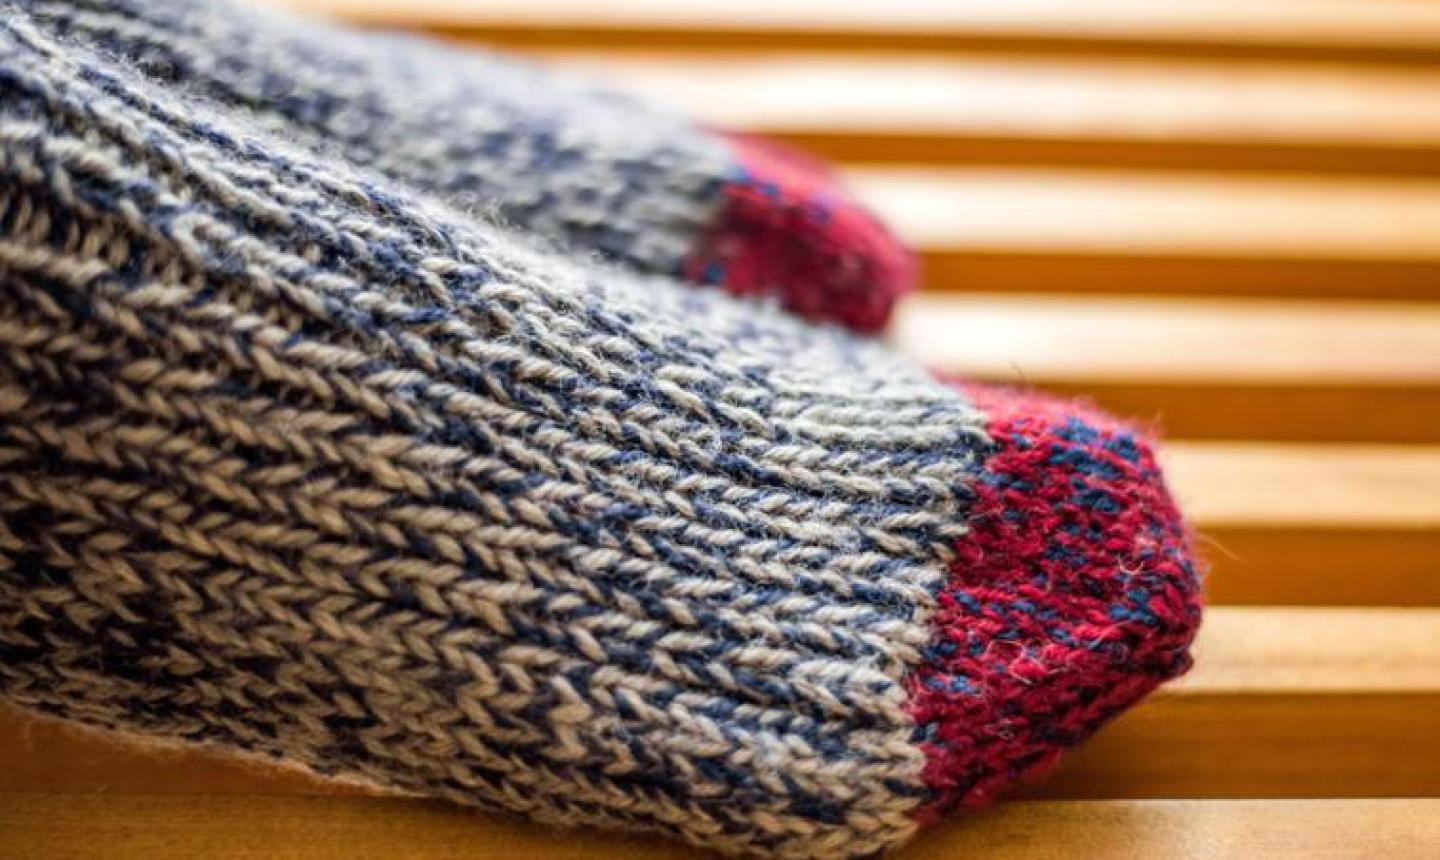 Free Knitting Patterns For Bed Socks 7 Pro Tips For Sock Knitting Success Even If Its Your First Time